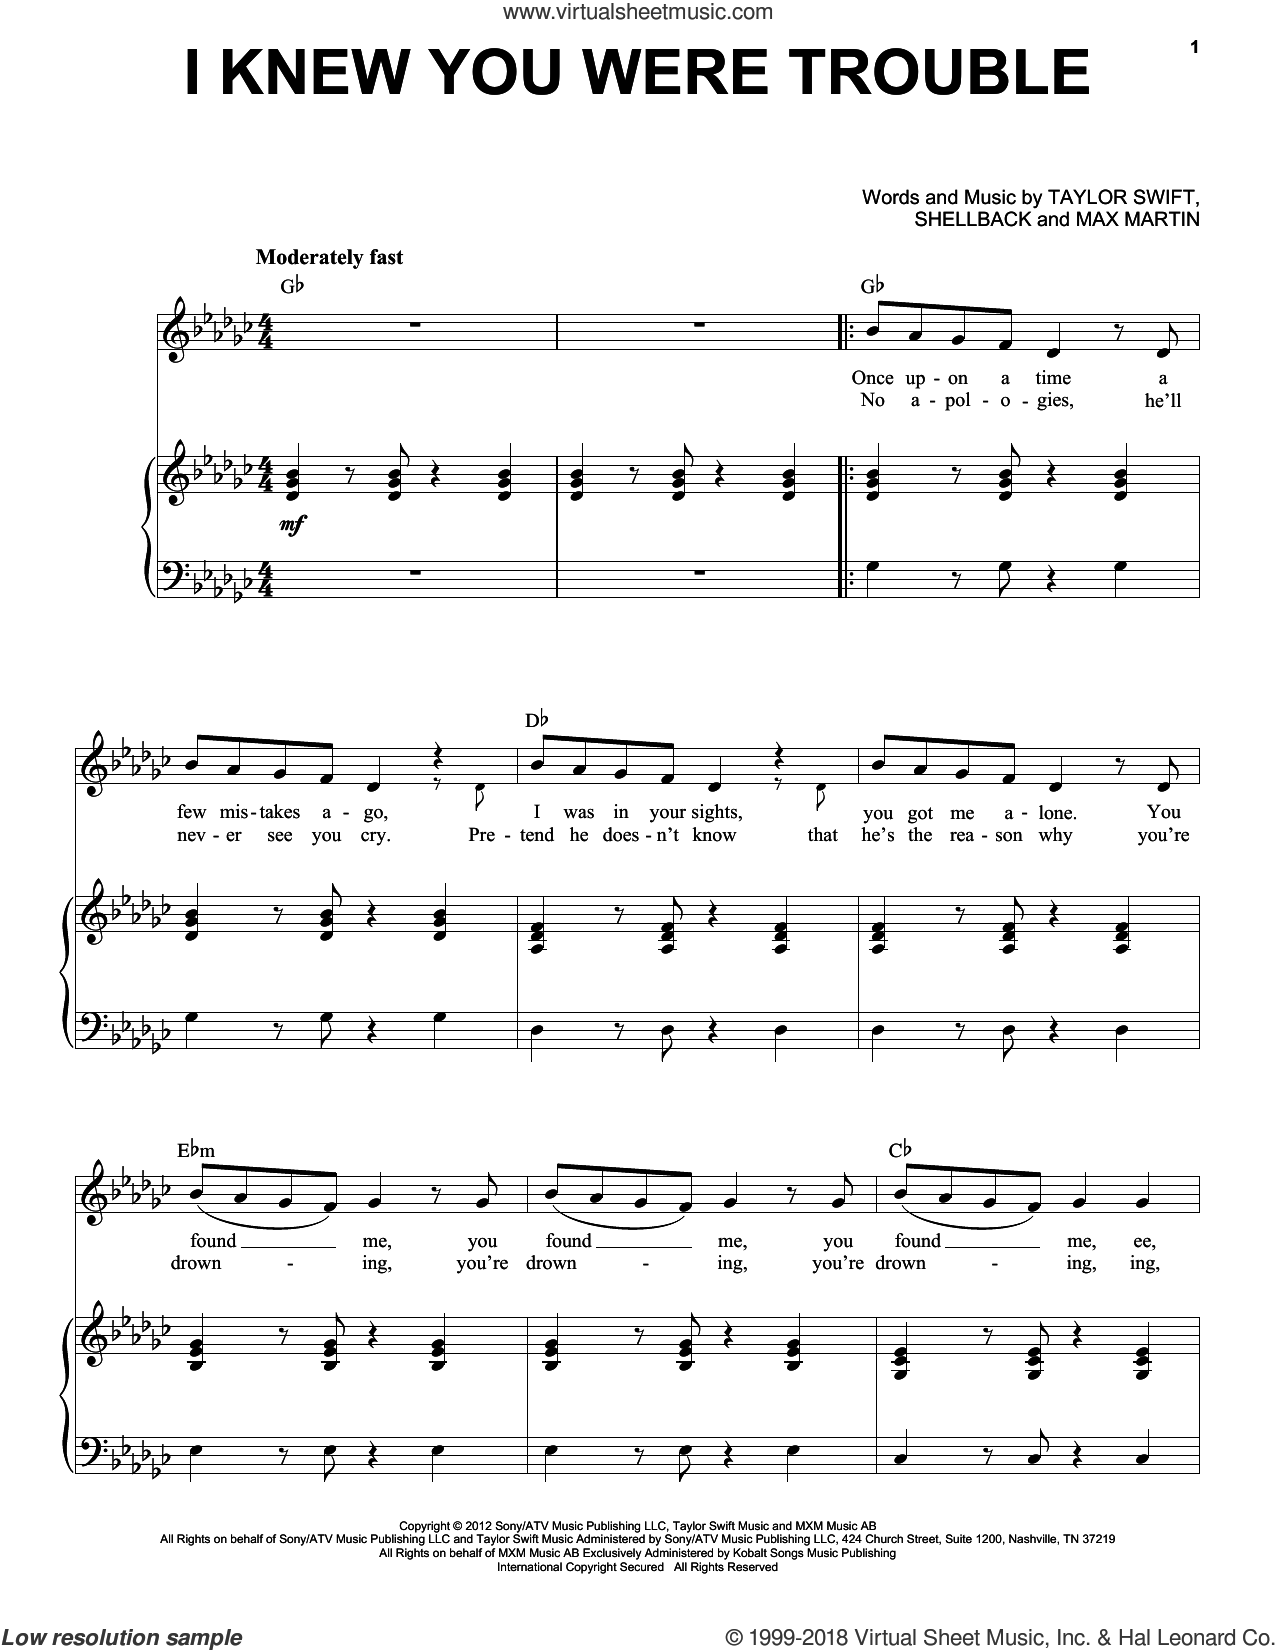 I Knew You Were Trouble sheet music for voice and piano by Taylor Swift, Max Martin and Shellback, intermediate